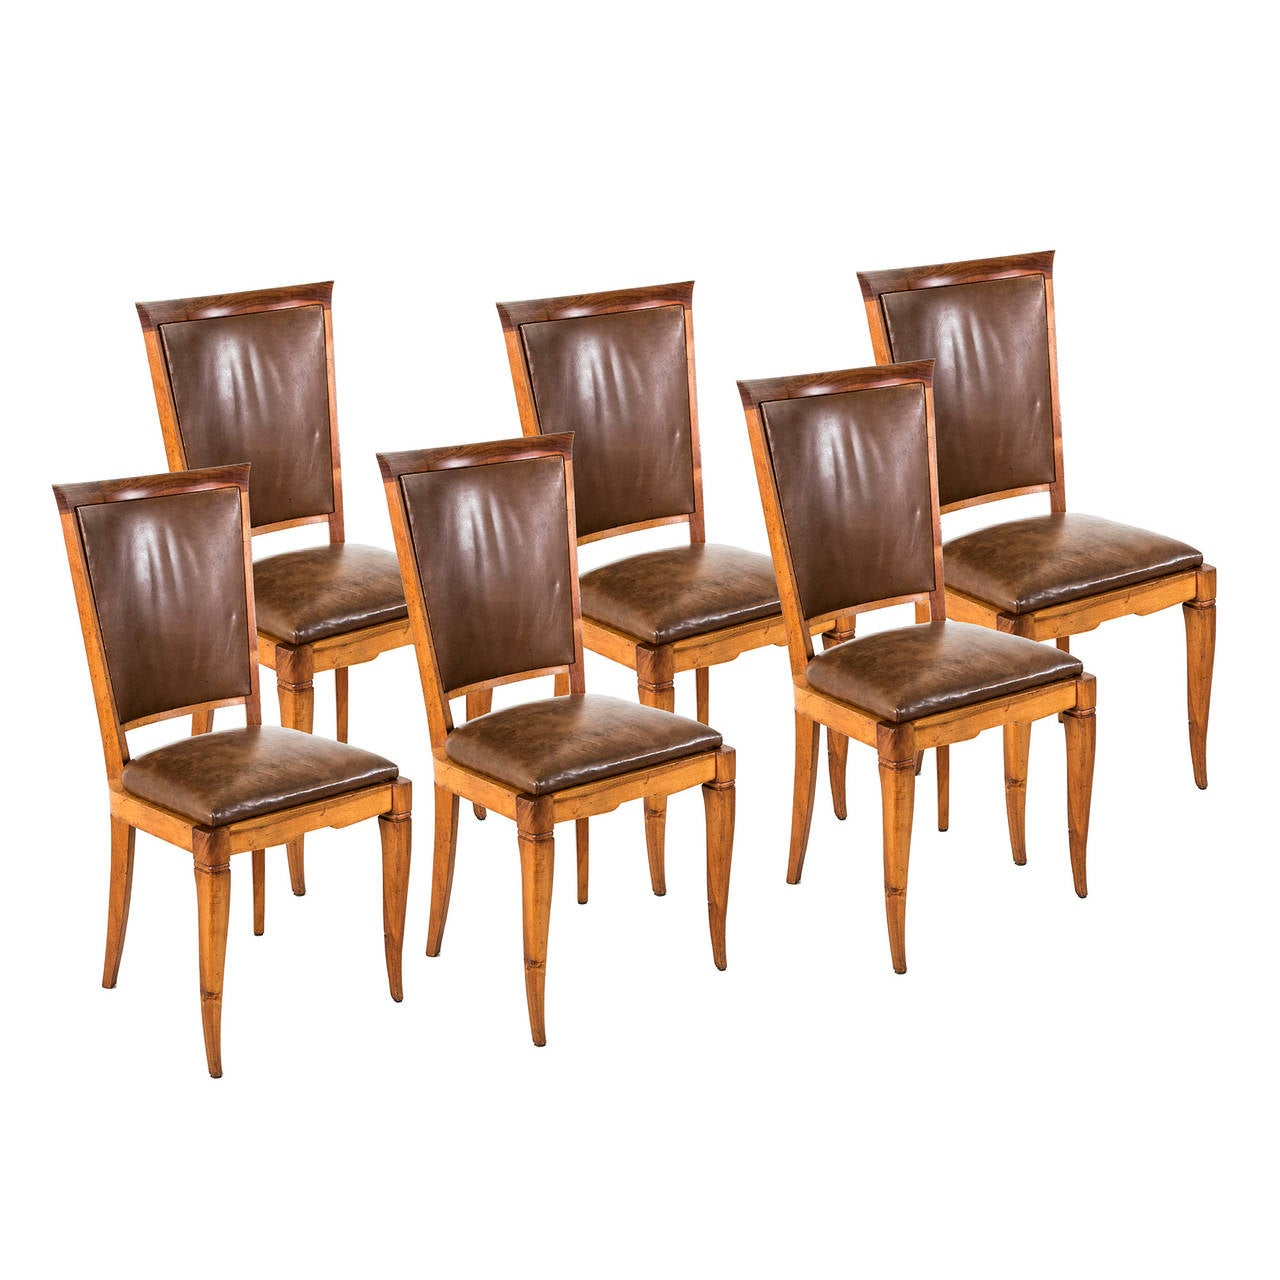 Set Of Six Art Deco Period French Dining Chairs With Leather Upholstery 1